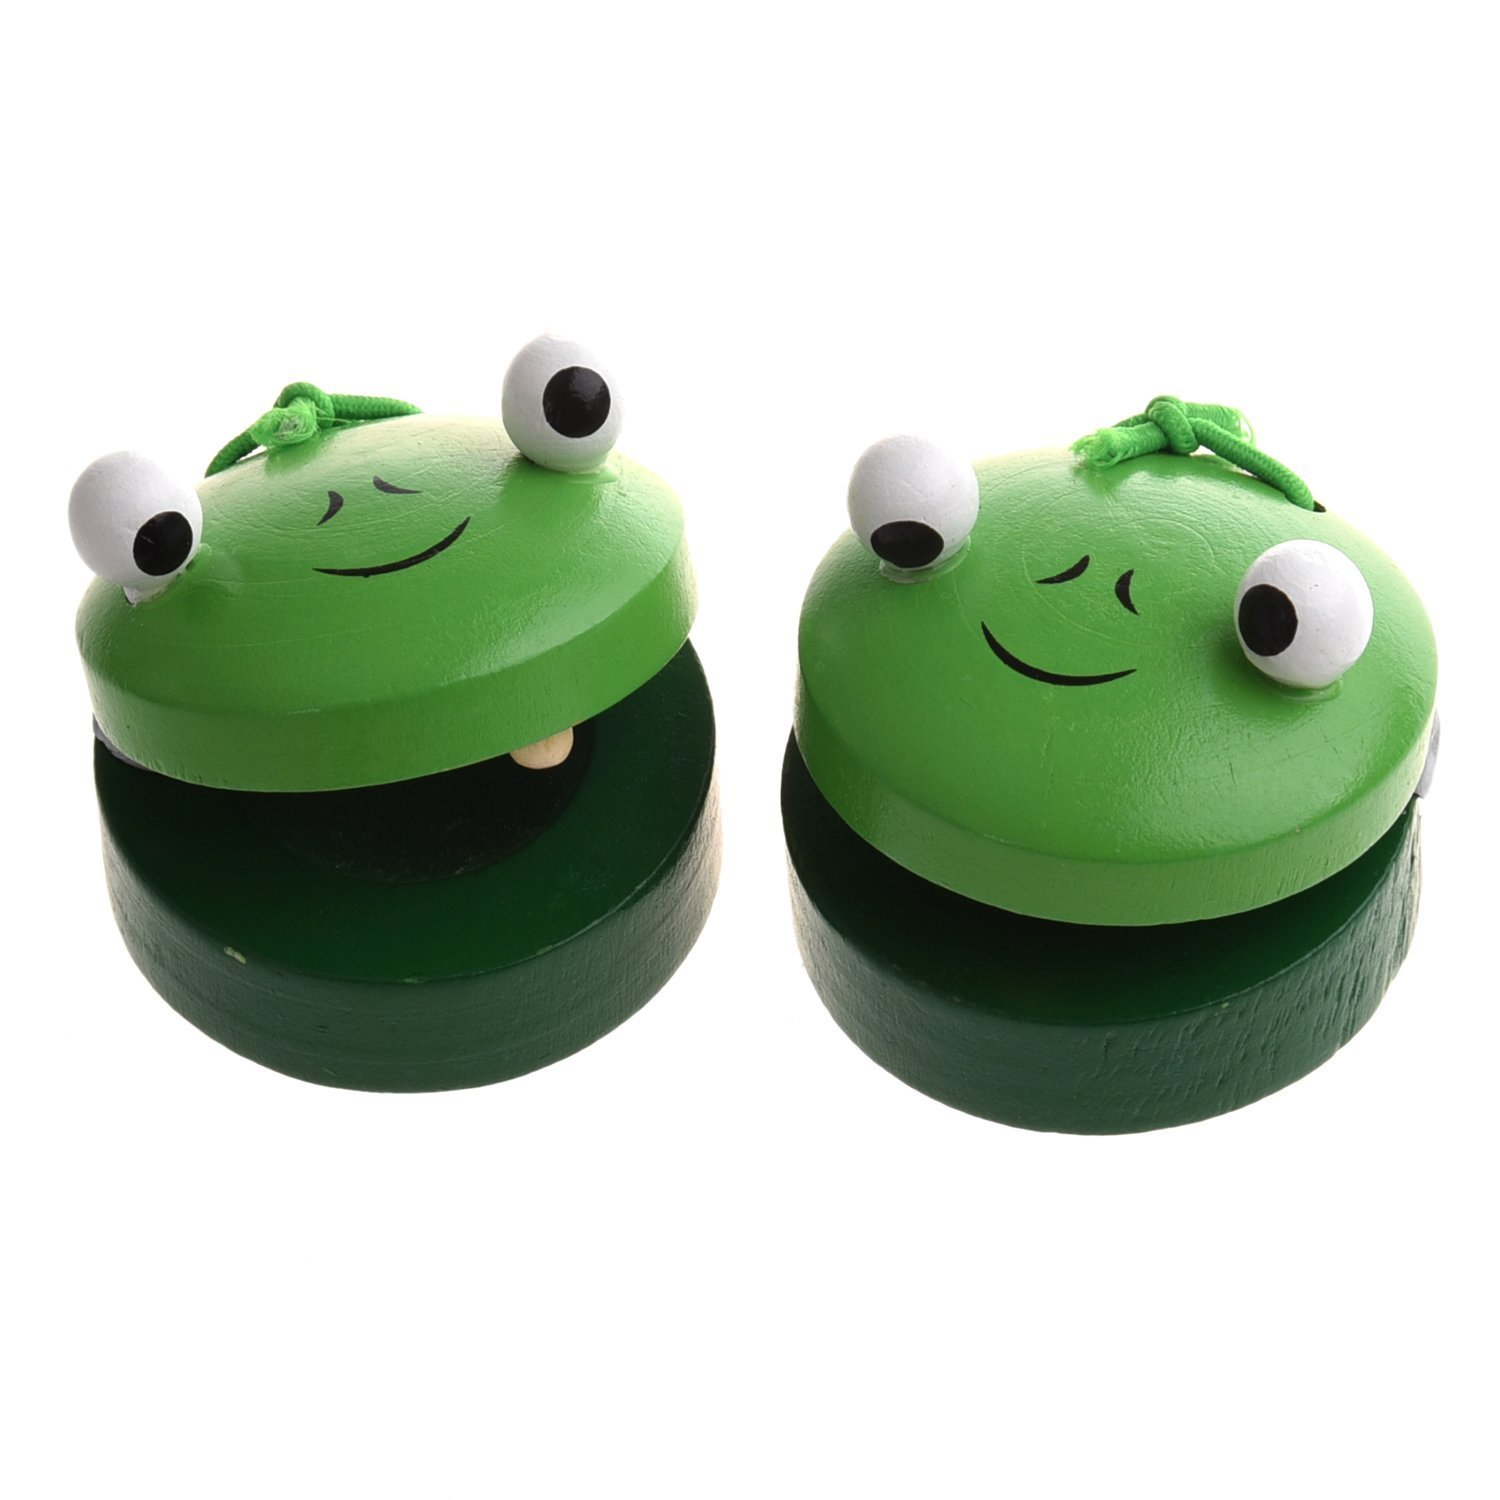 SODIAL(R) 1 Pair Round Wooden Frog Castanet Baby Musical Instrument Toy - Green SHOMAGT17155